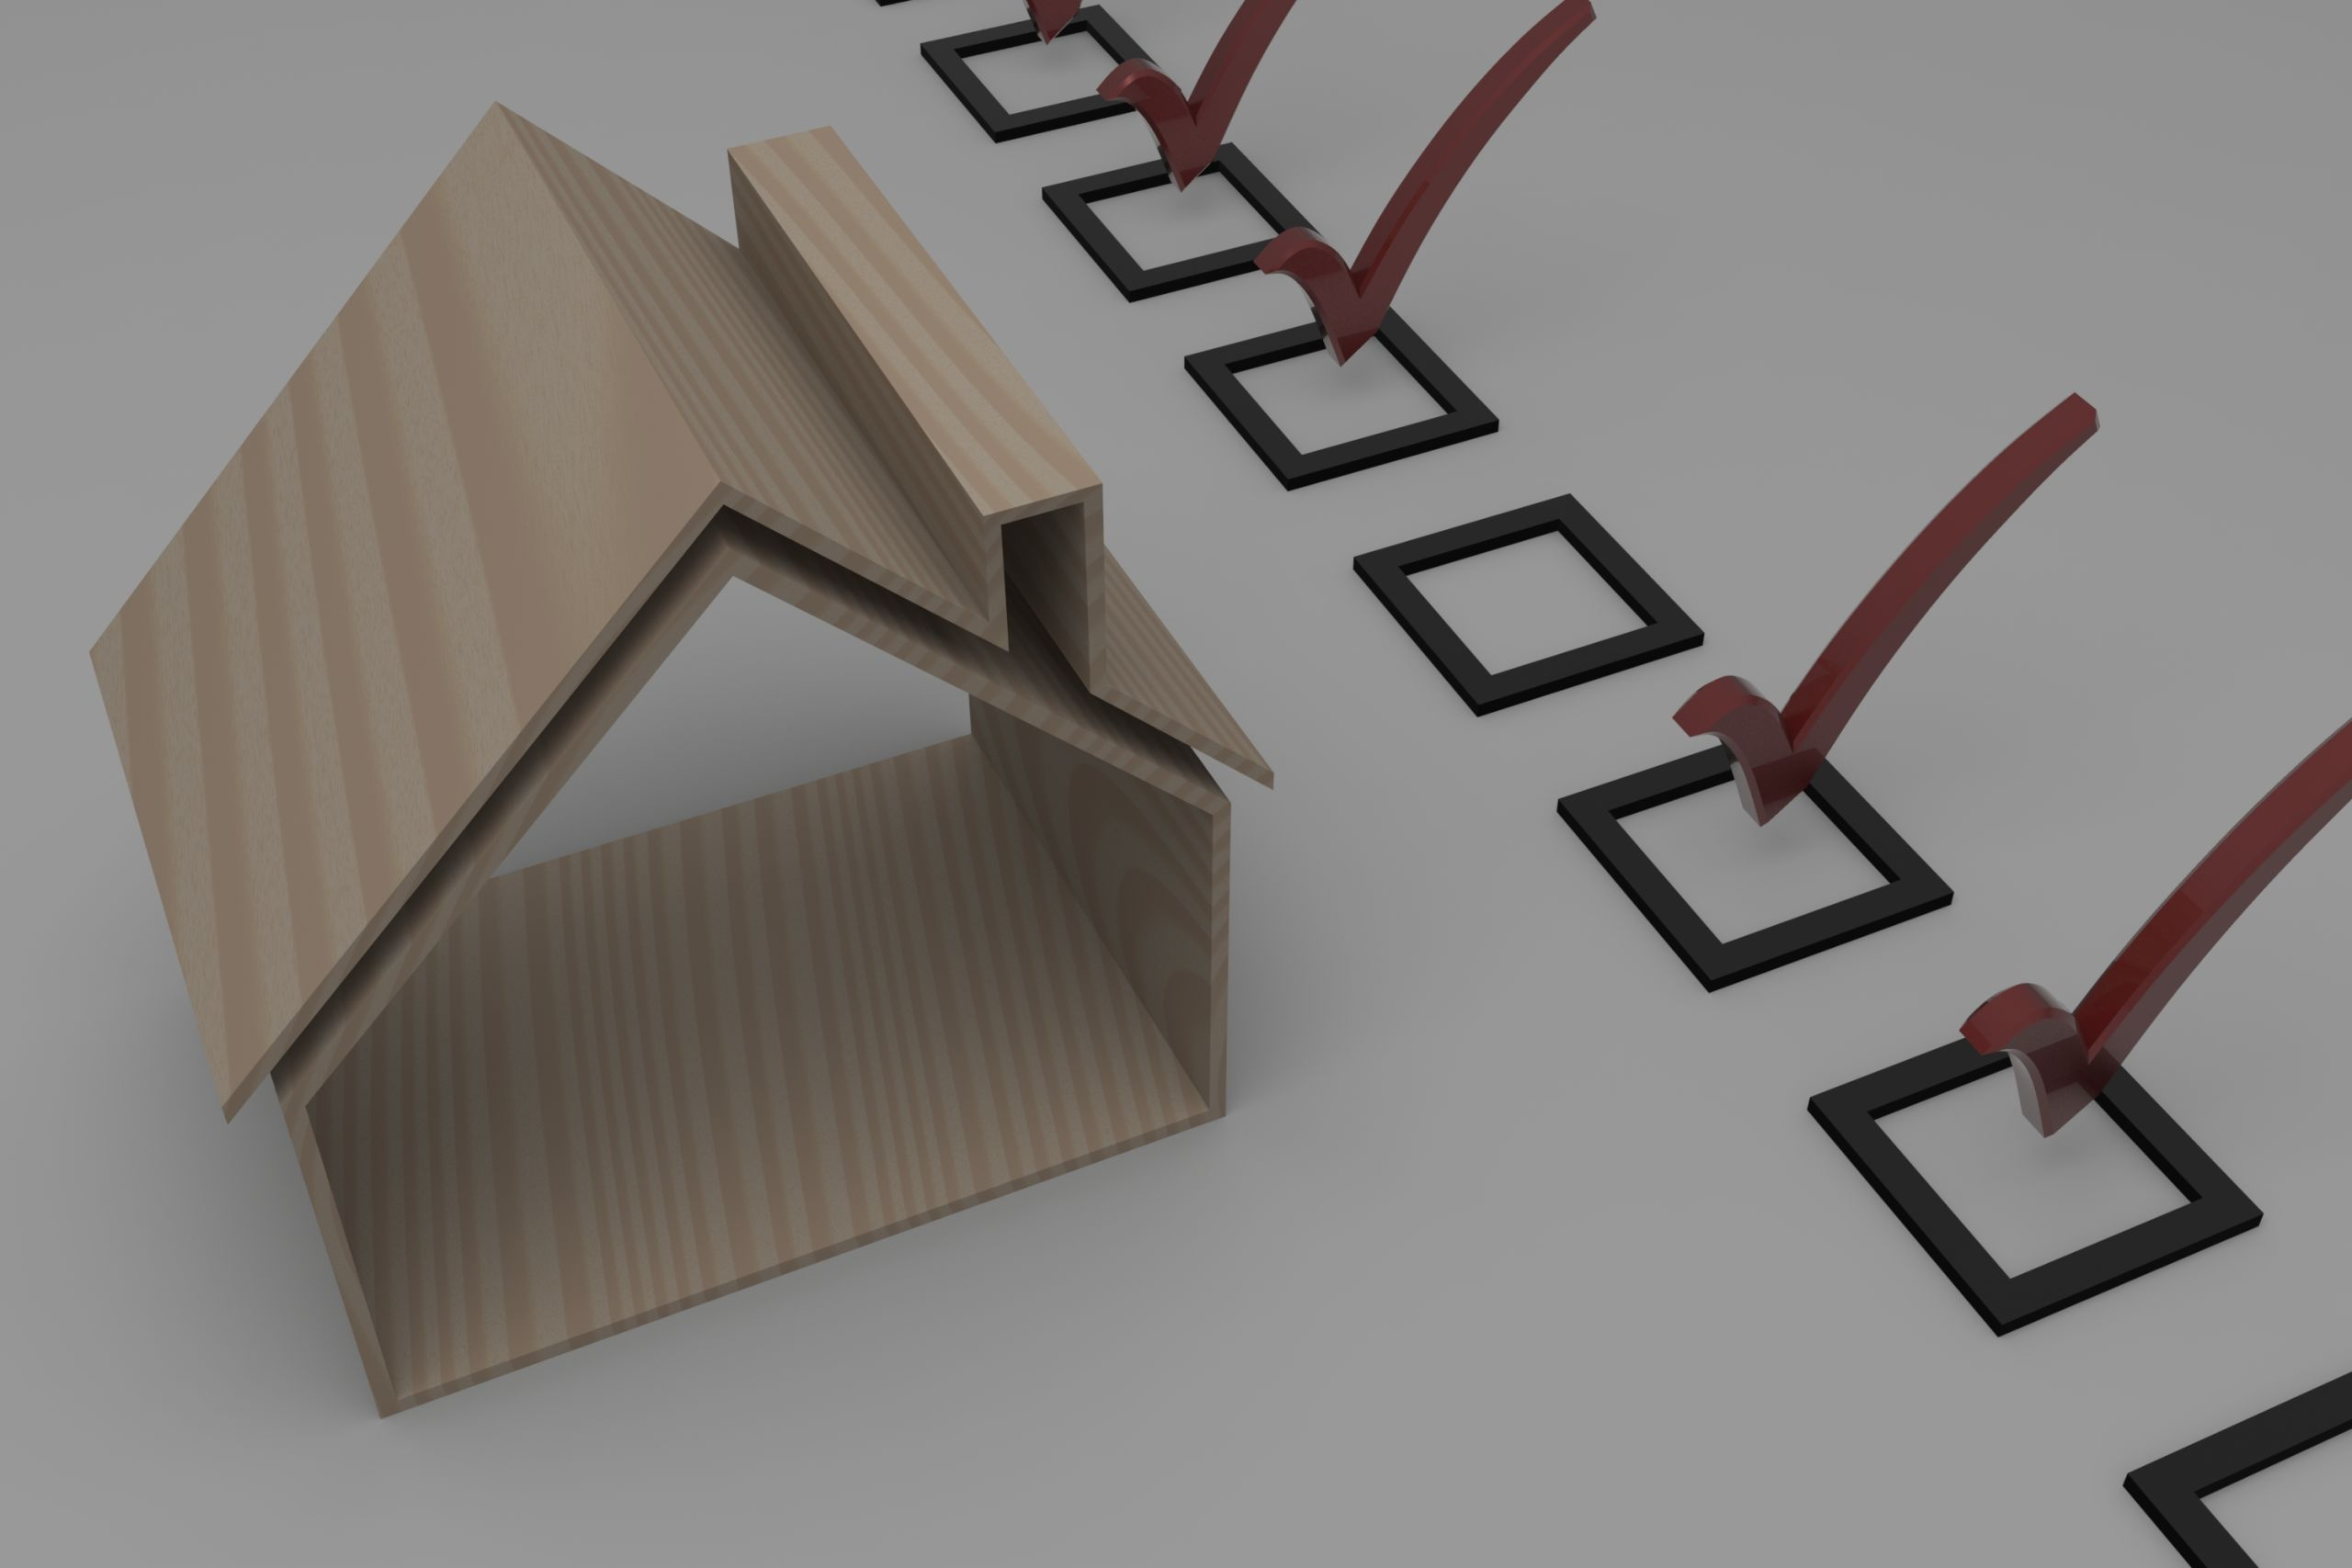 Home Seller's To-Do Checklist